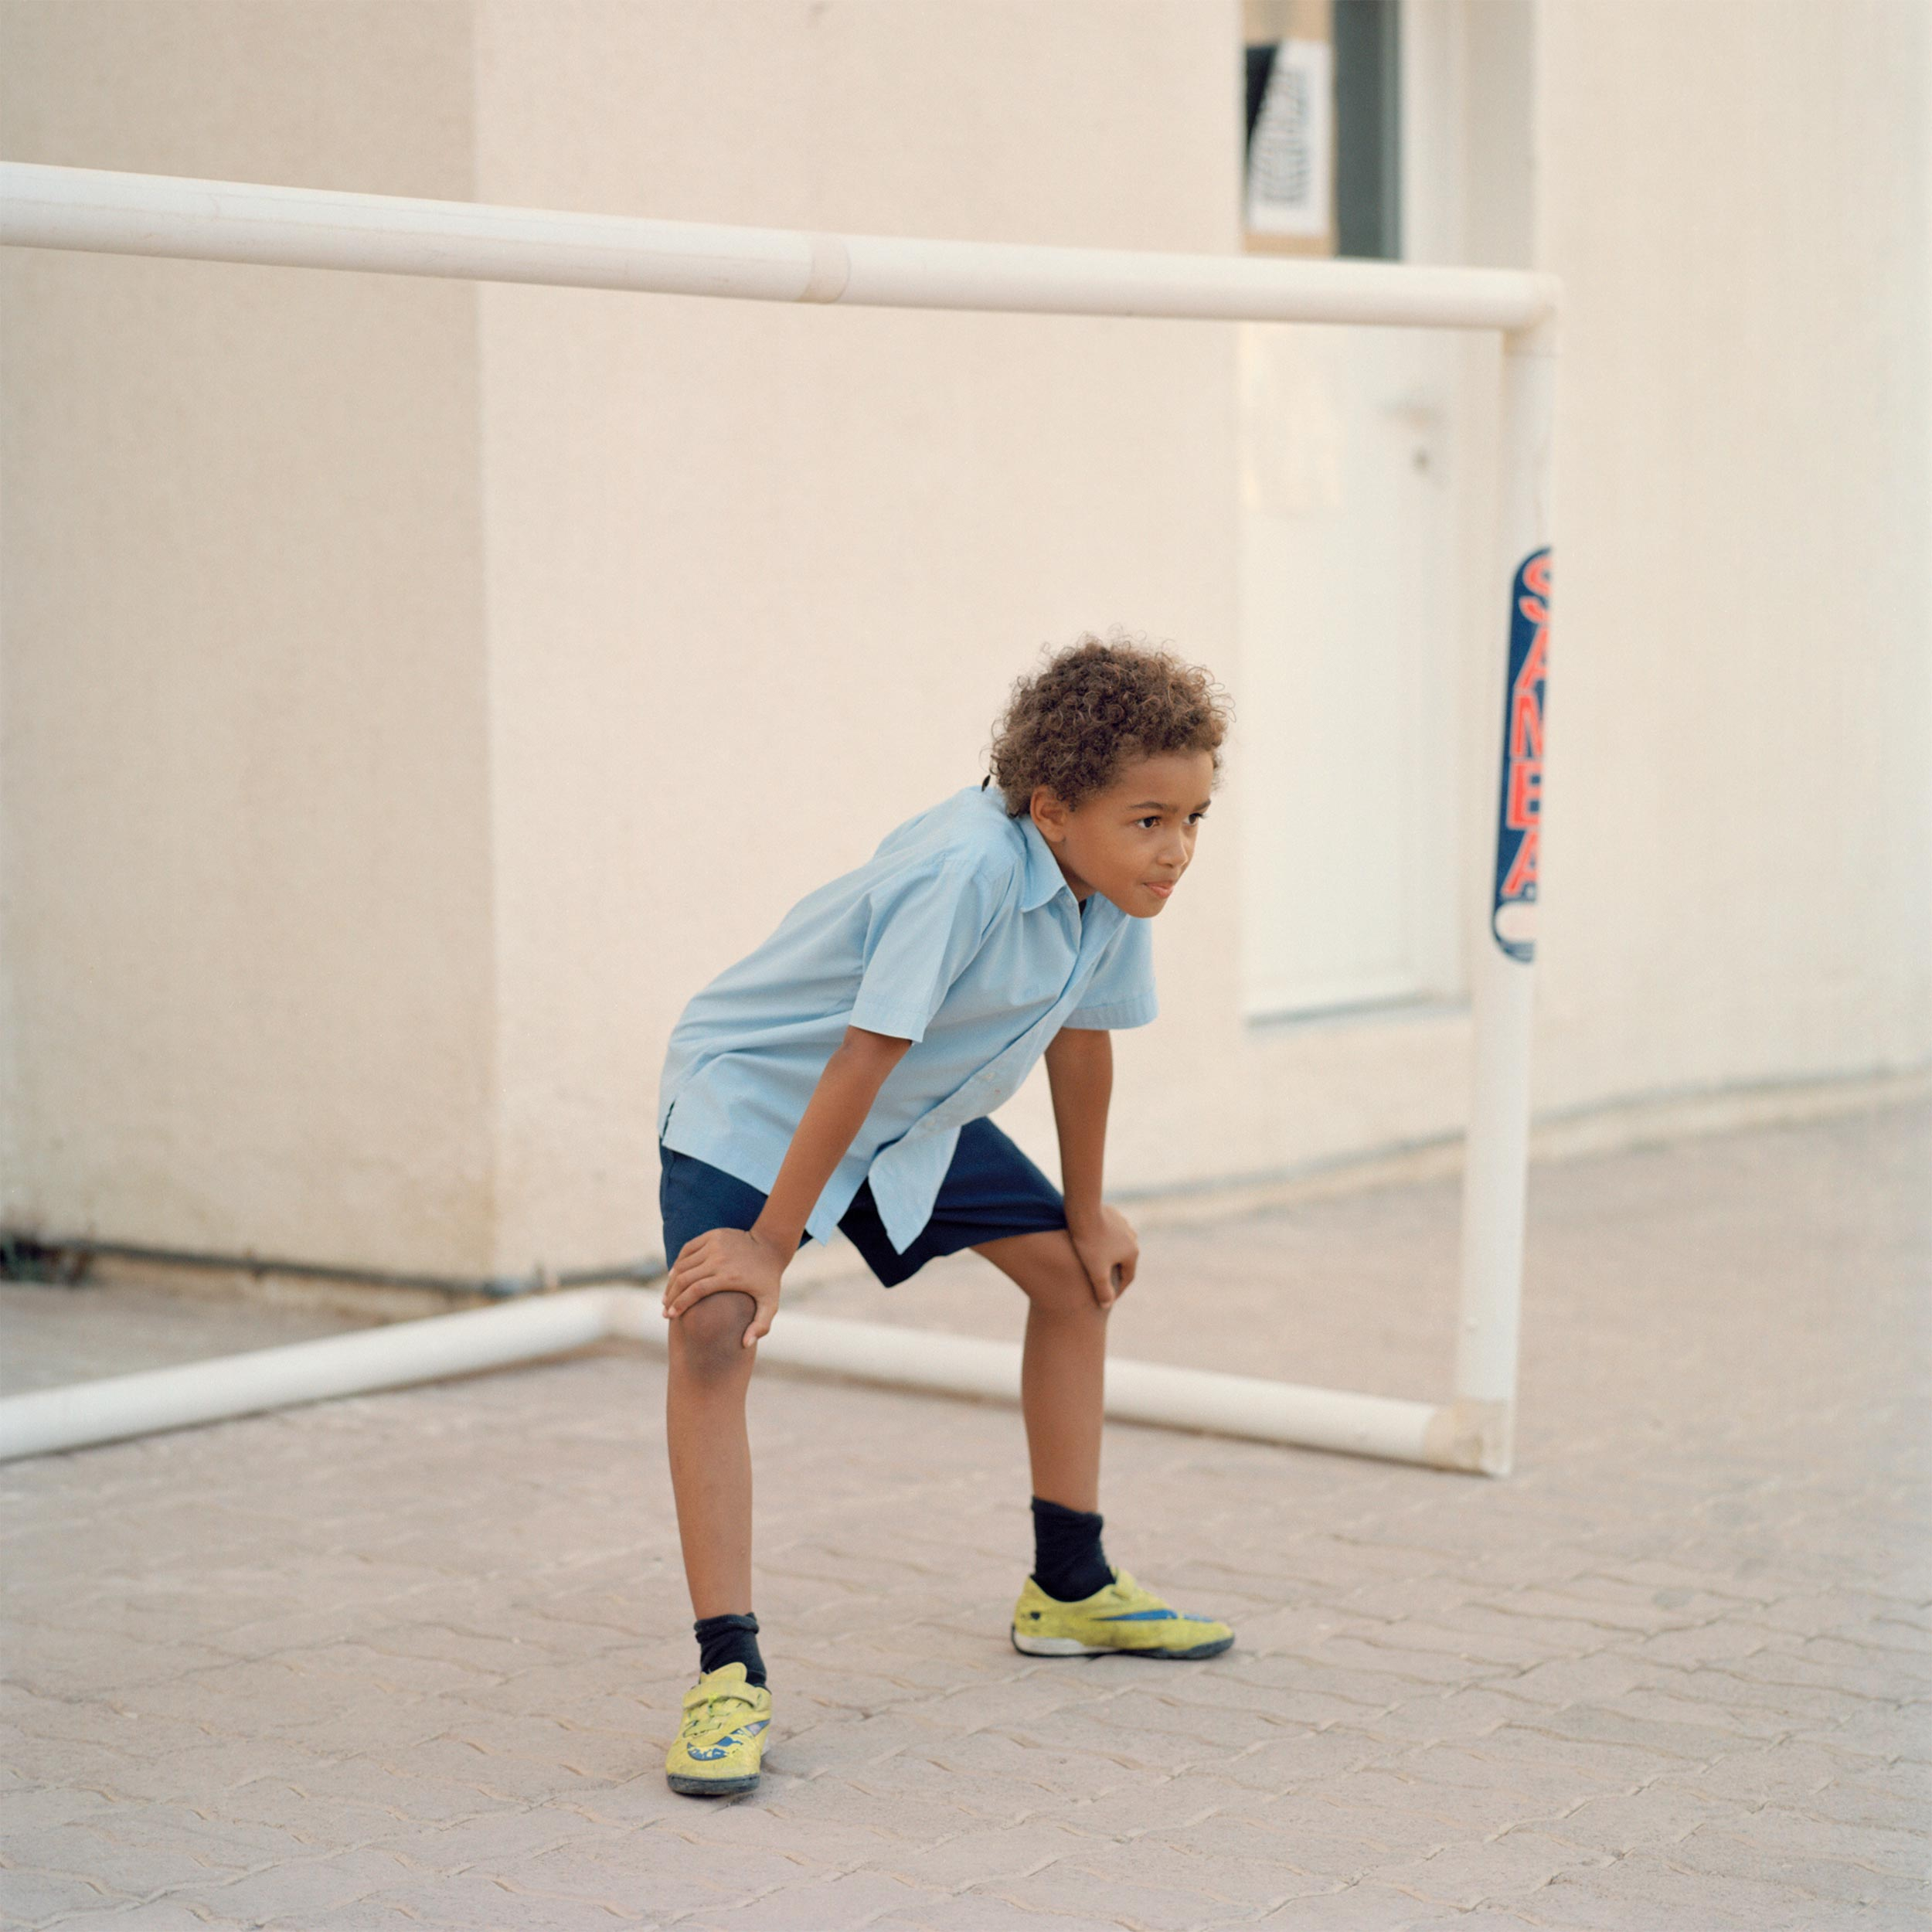 photograph of boy playing football from series XO